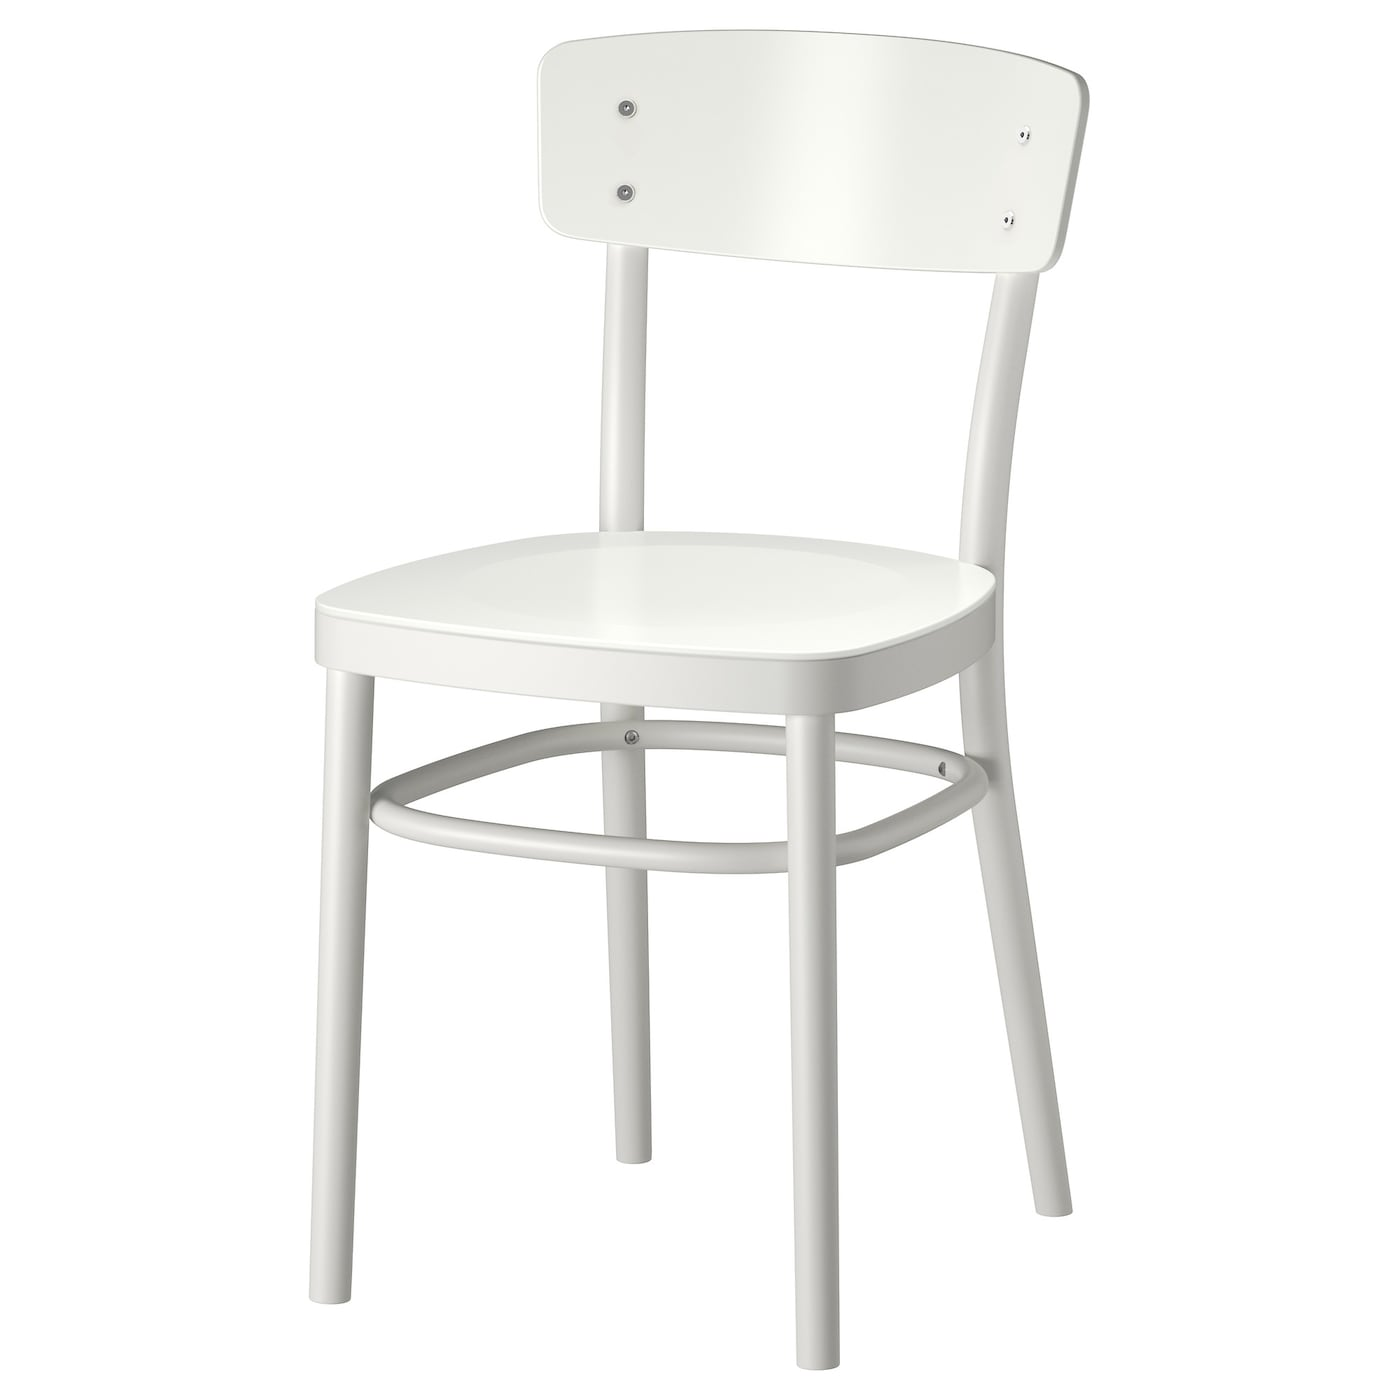 IDOLF Chair White IKEA